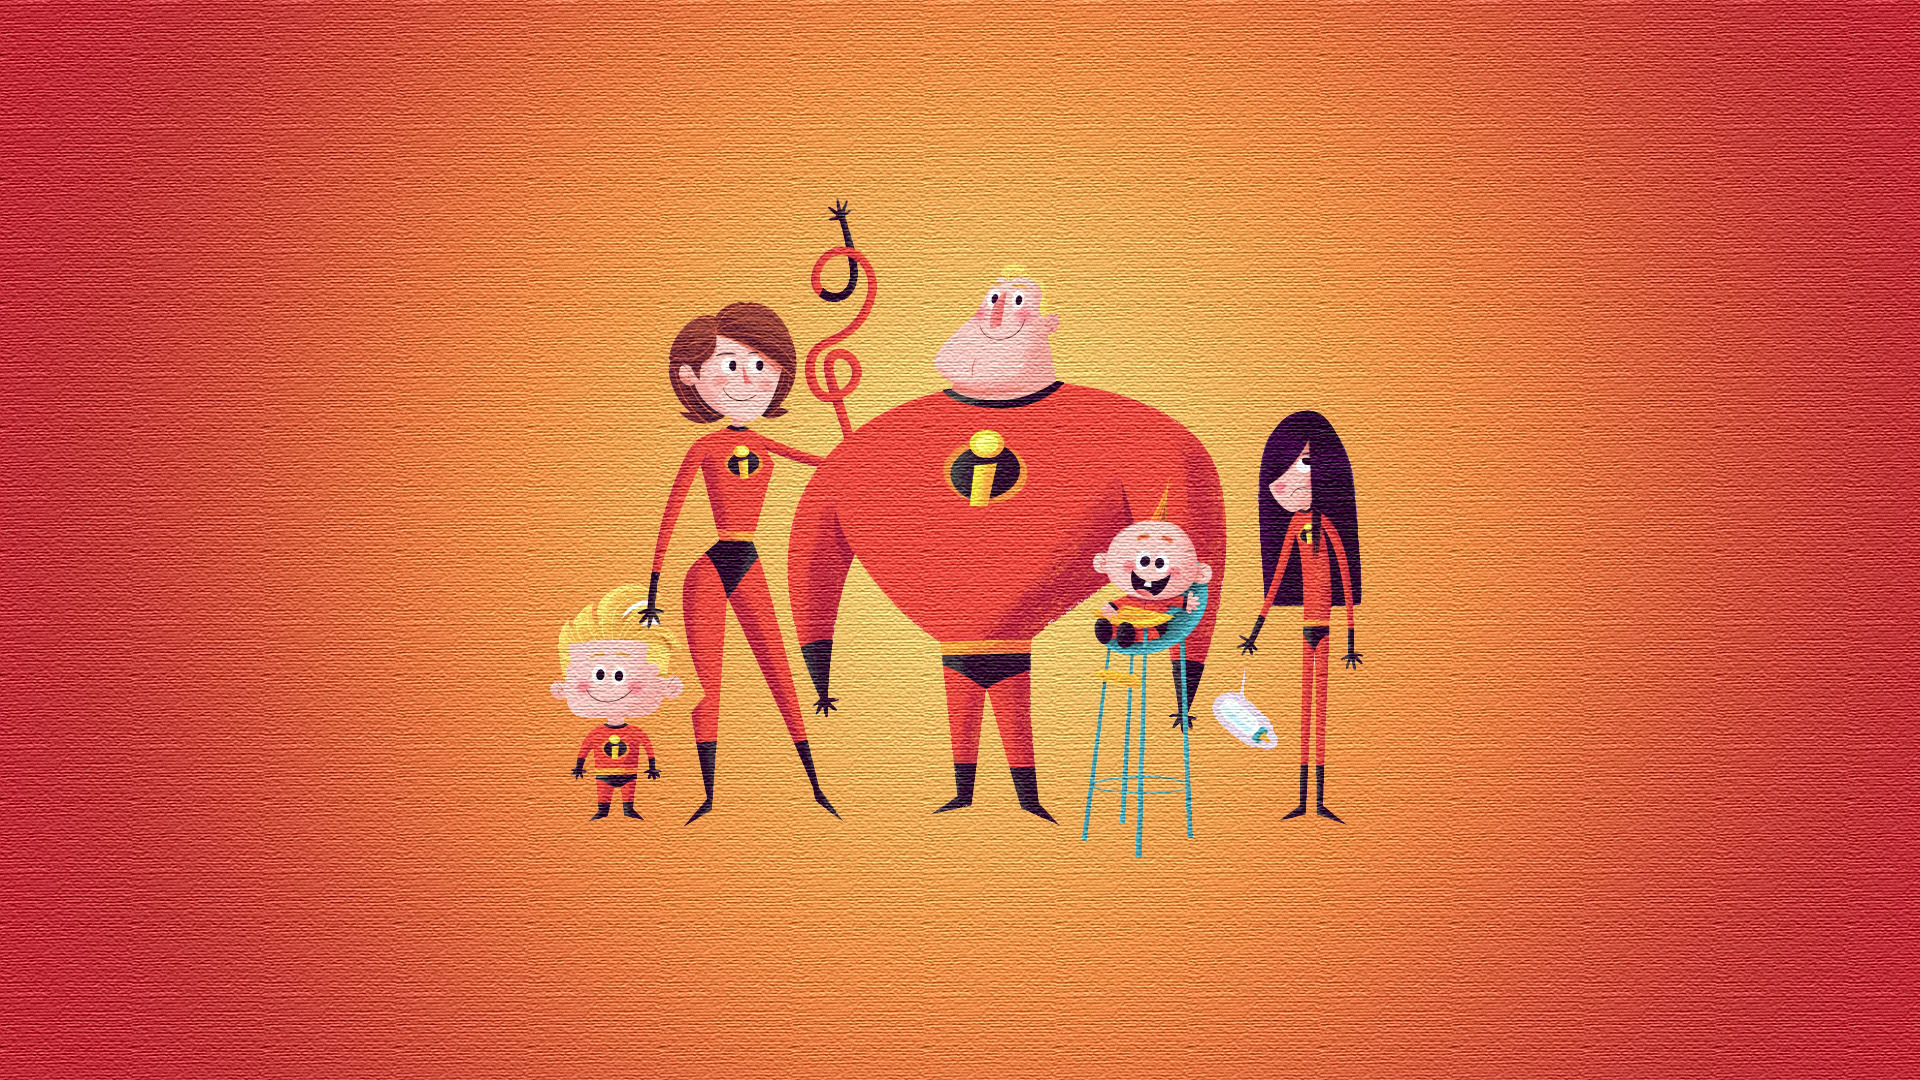 Was 'Incredibles 2' Really Incredible or Just Slightly Above Average? | by  Jeff Gordon | Boardwalk Times